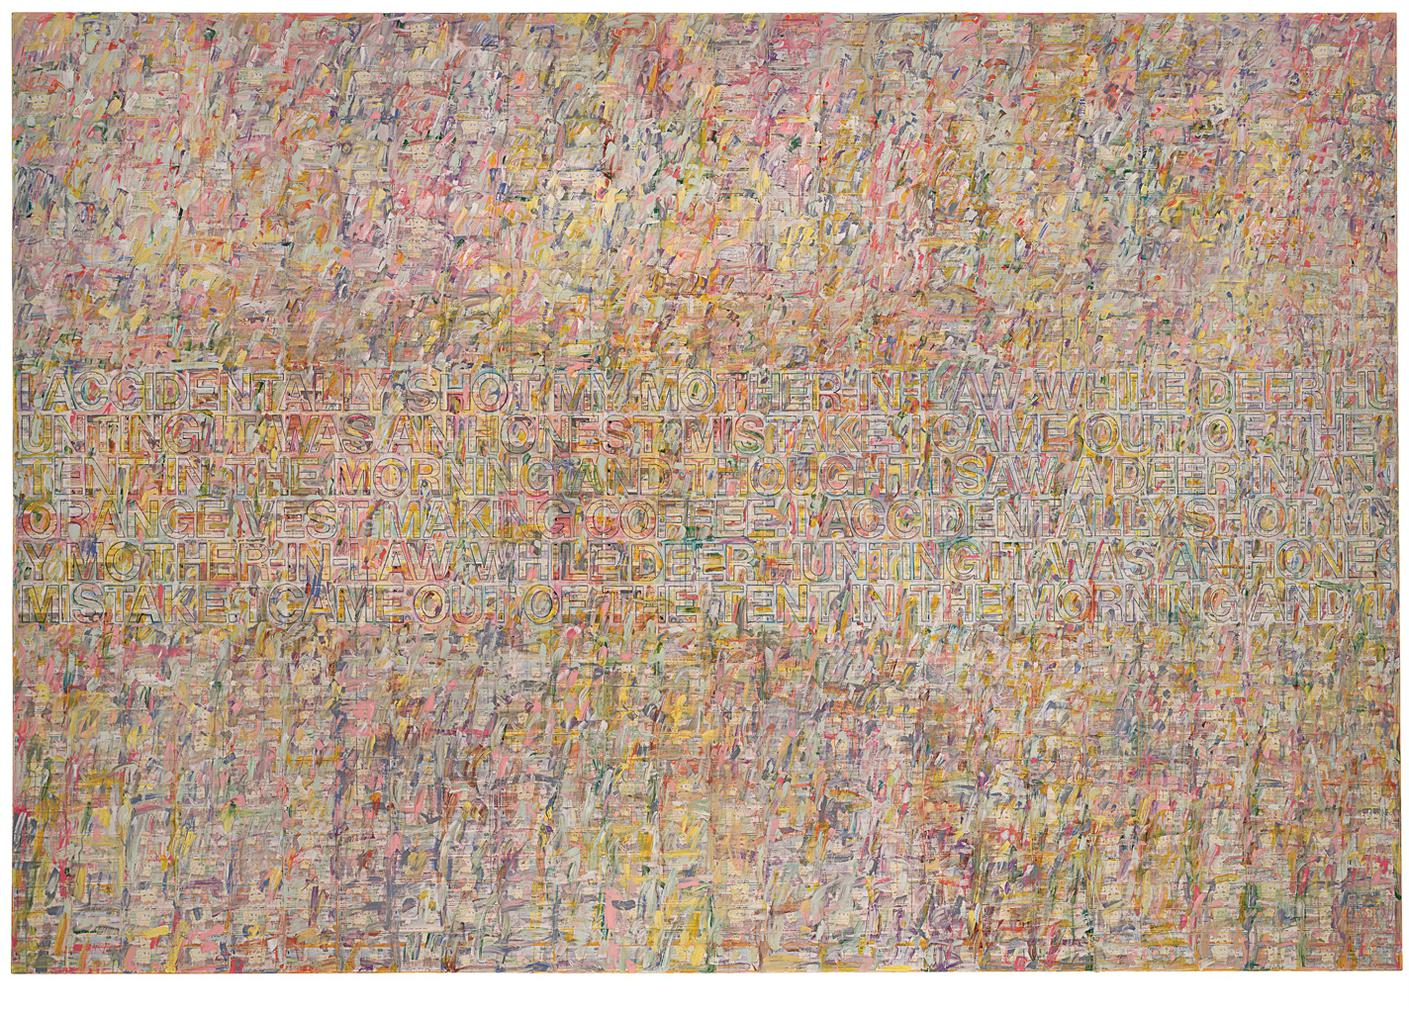 Richard Prince-Untitled (Check Painting)-2006